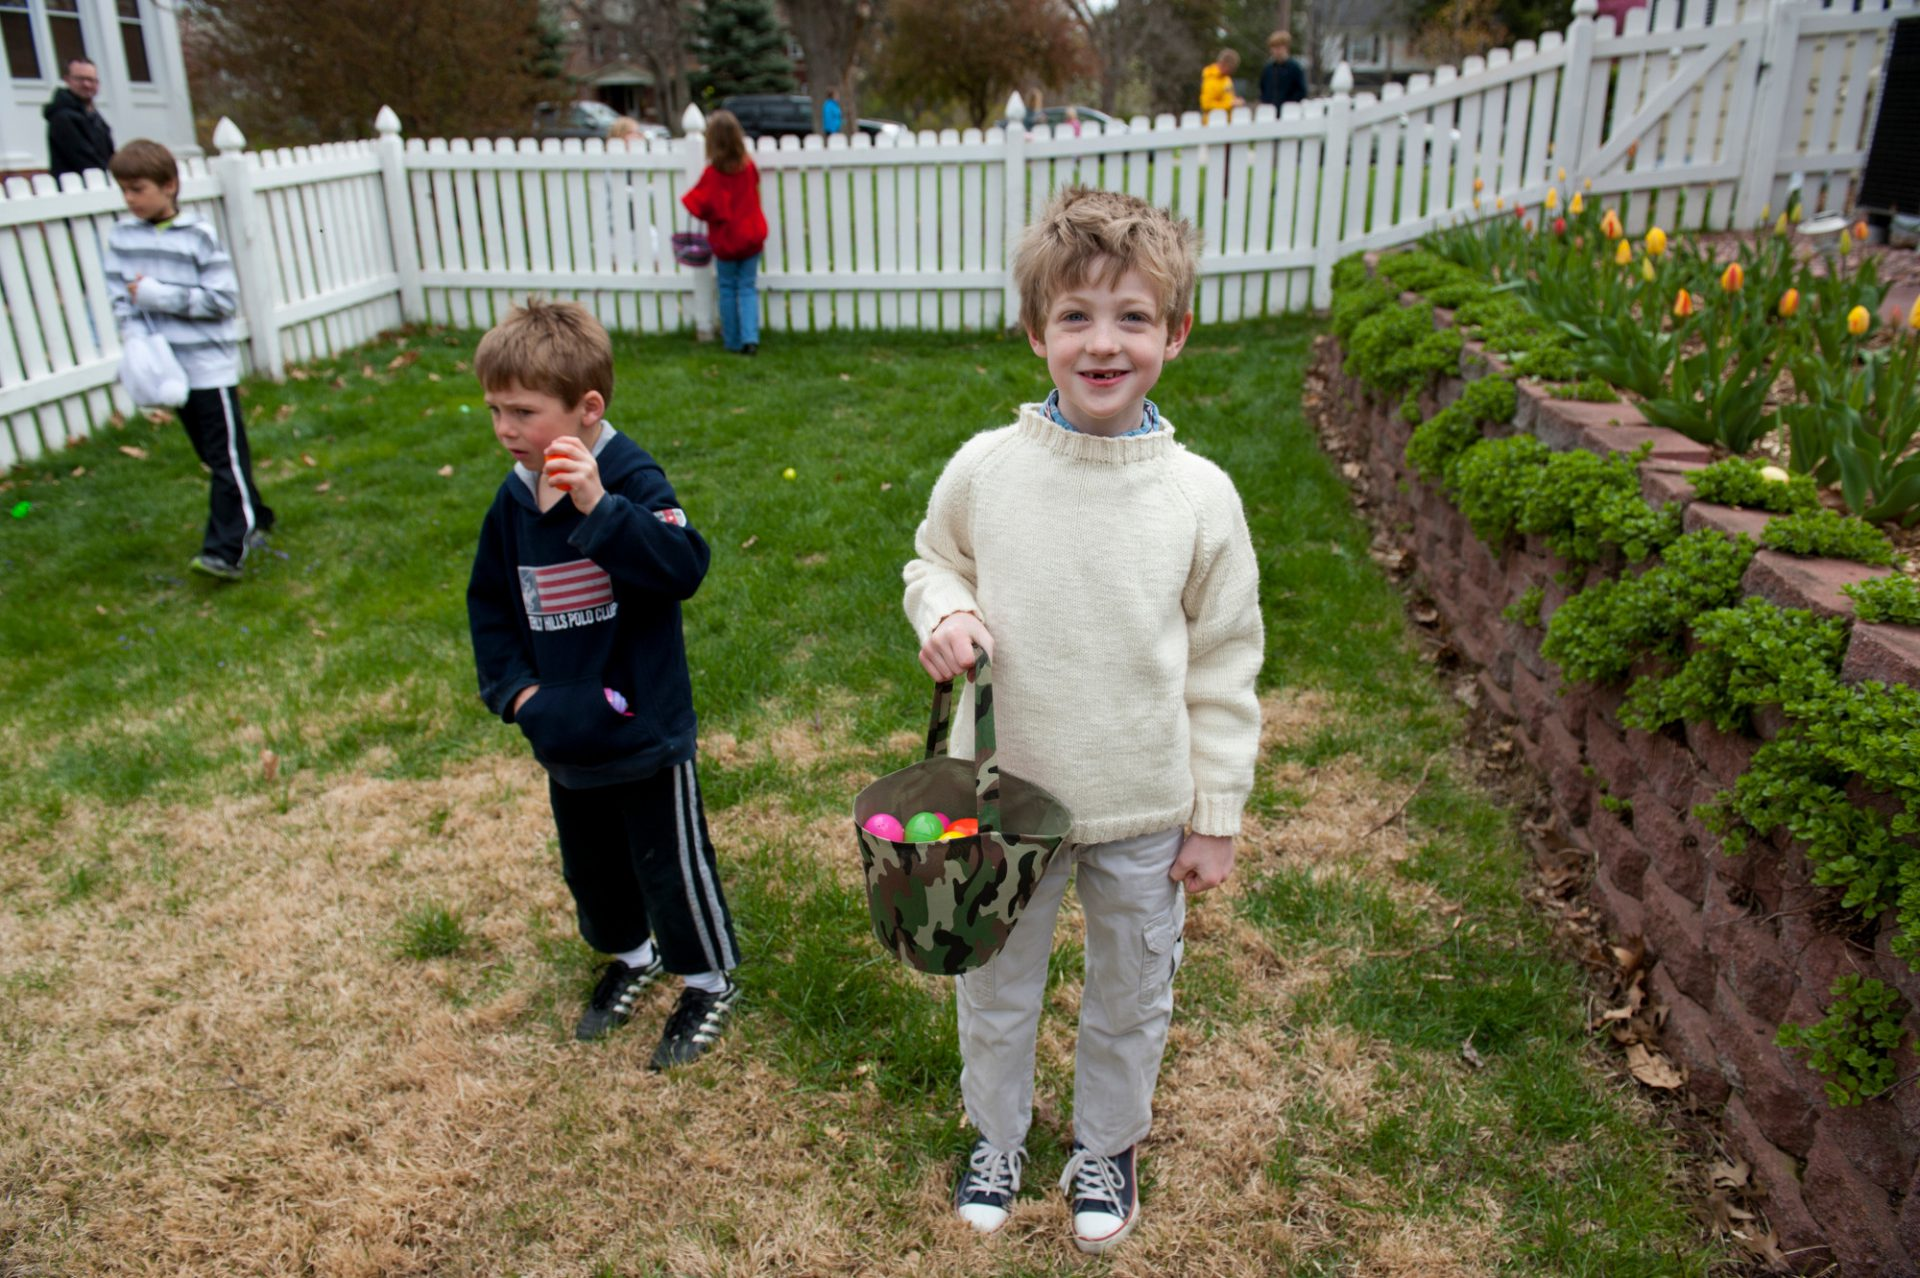 Photo: Young children participate in an Easter egg hunt.